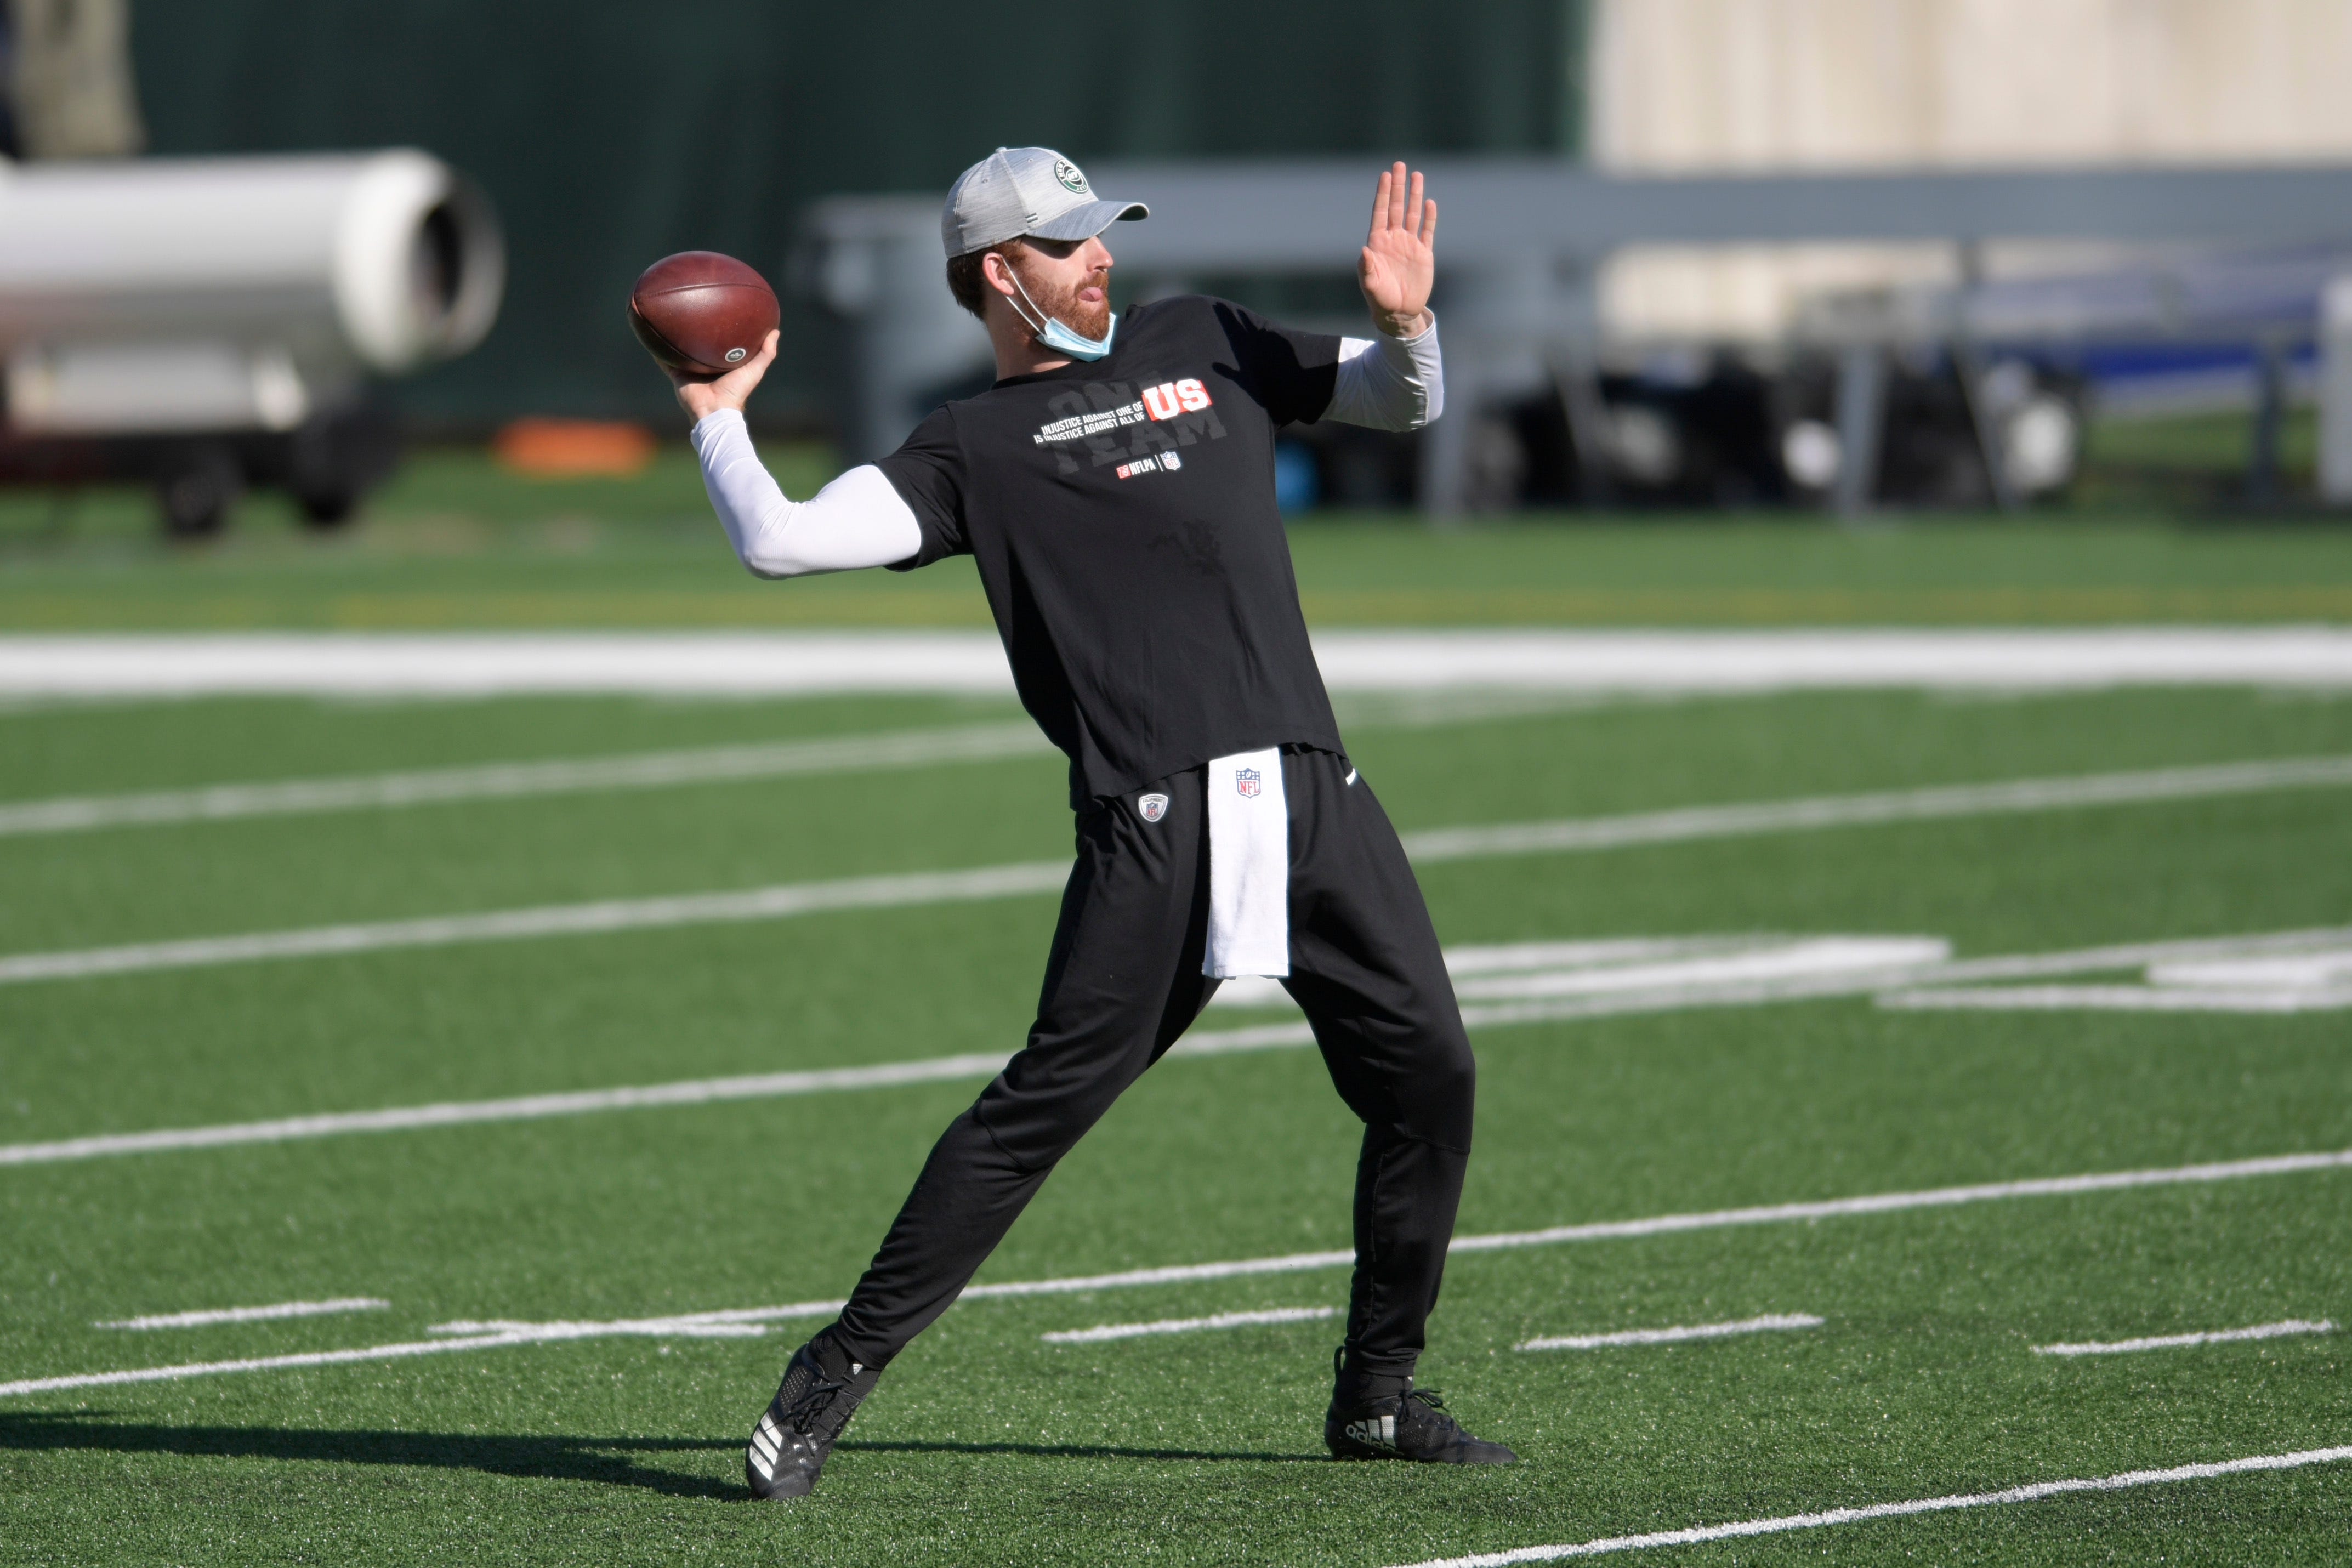 Joe Flacco on returning home to play for Eagles